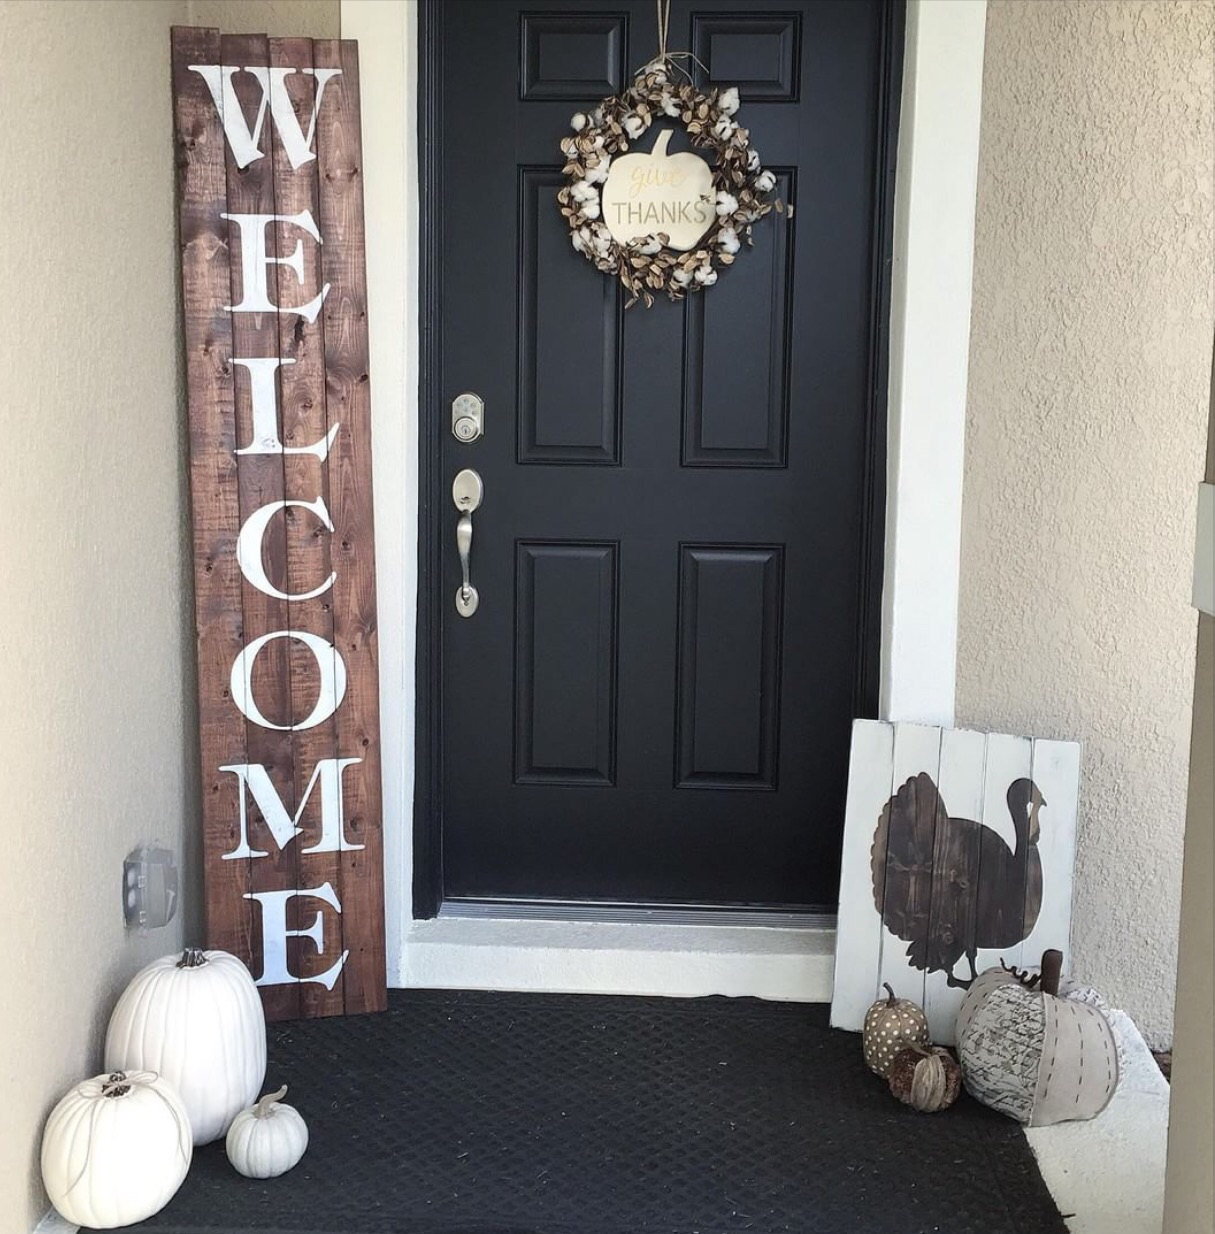 Wood Sign Design Ideas how to make a diy wooden sign Stenciled Front Door Welcome Sign